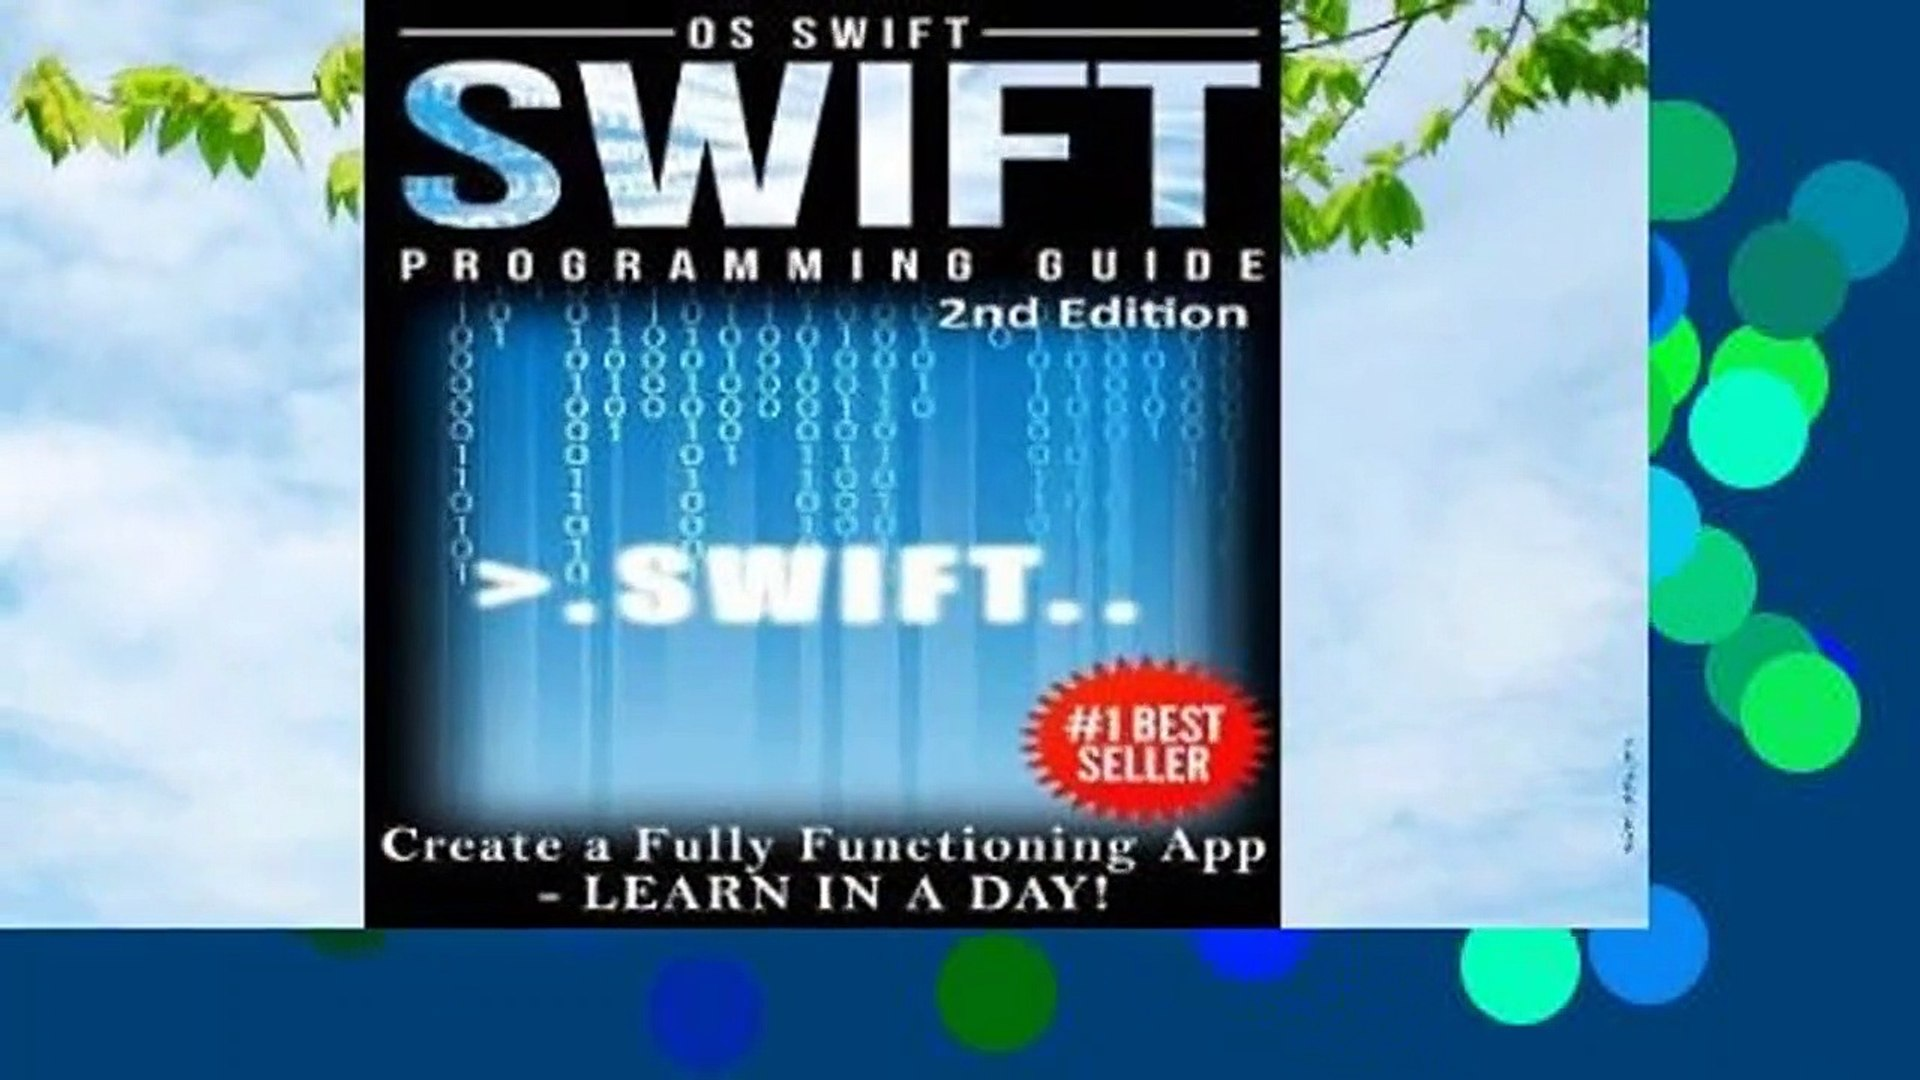 About For Books  Programming Swift: Create a Fully Function App: Learn in a Day! by Os Swift